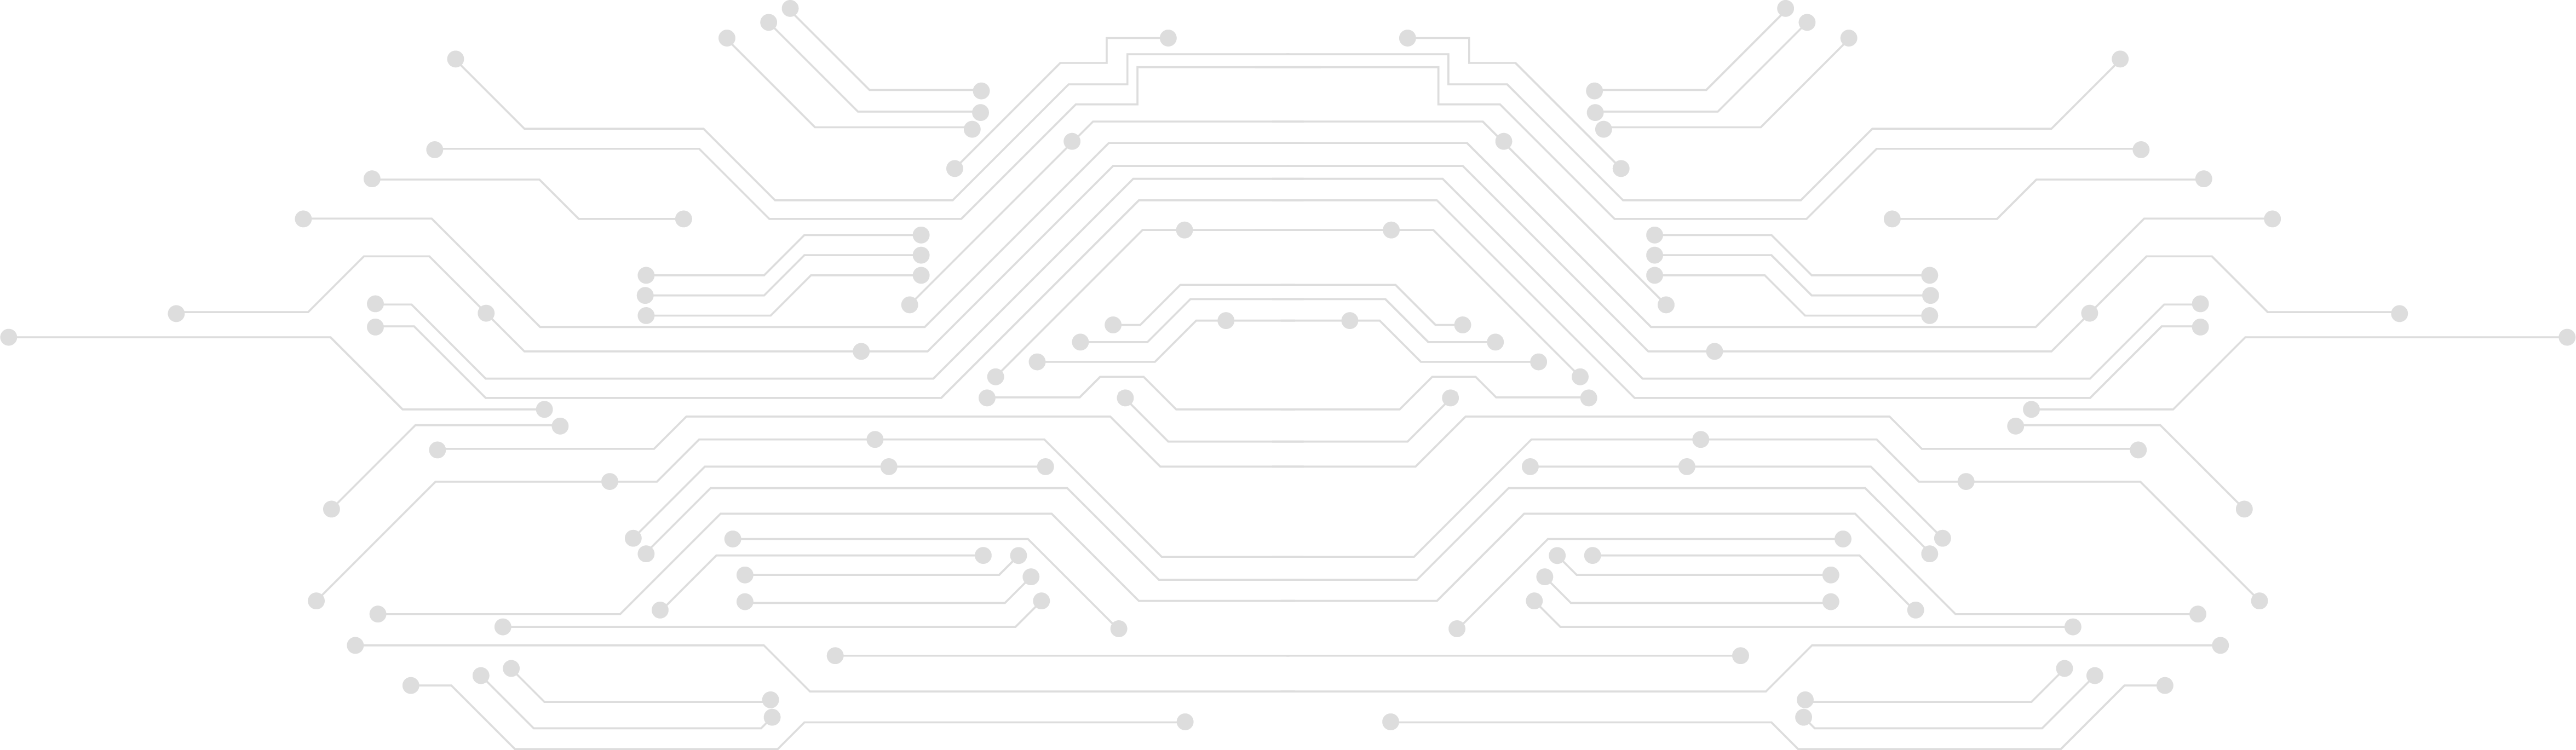 15 Circuit Background For Free Download On Ya Webdesign Fileintegrated Circuitsvg Wikimedia Commons Pica Manufacturing Solutions Image Freeuse